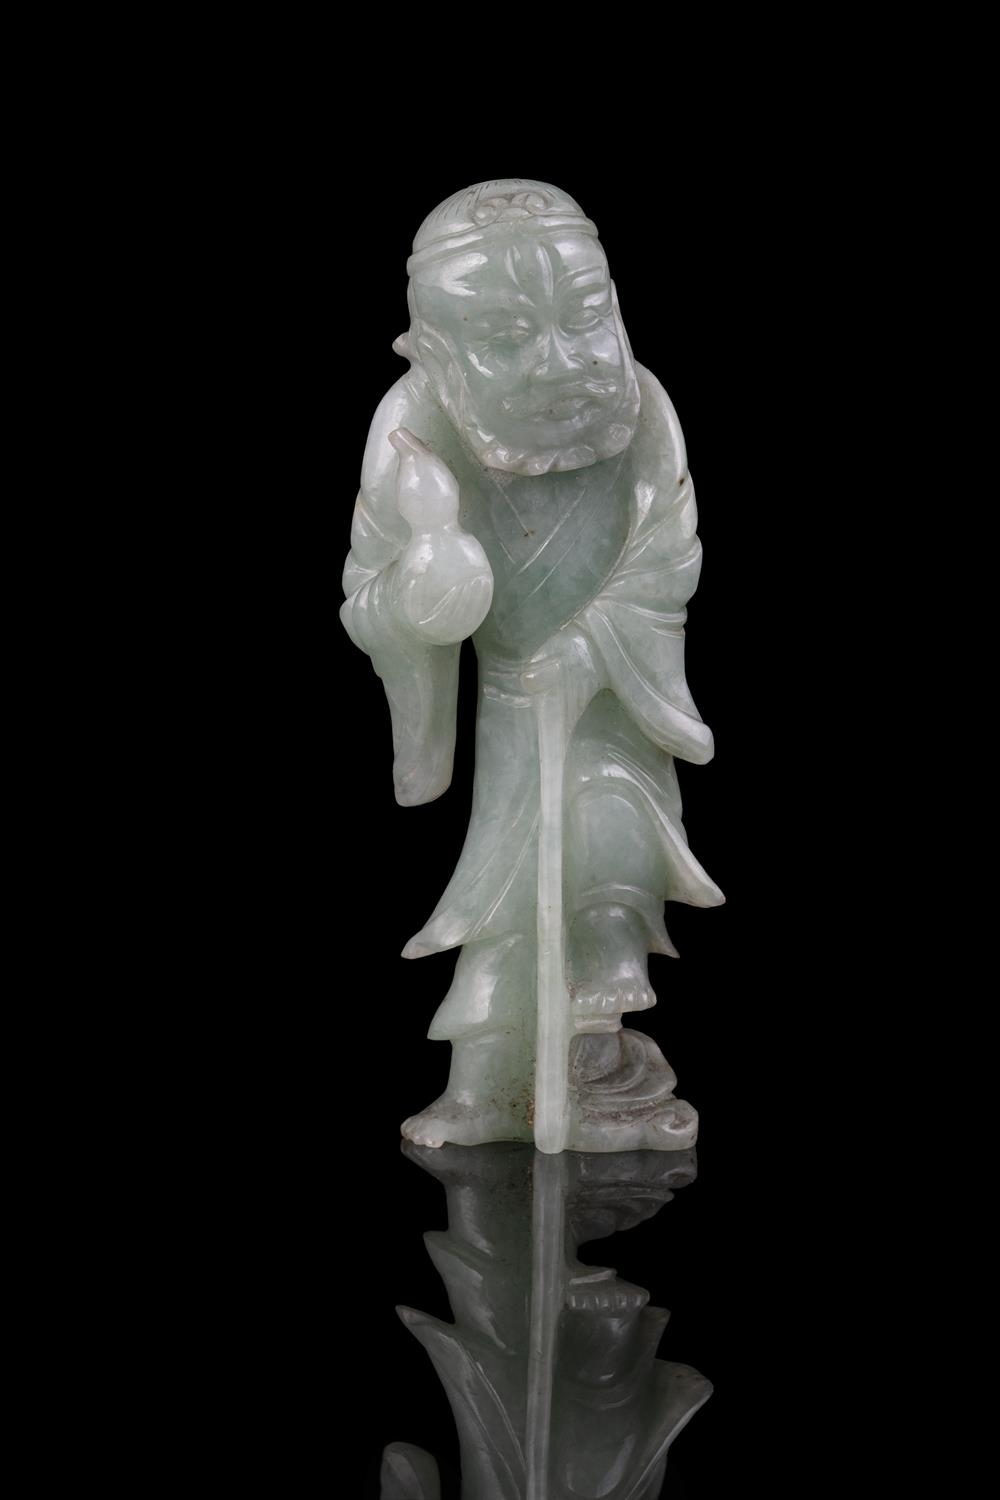 A JADEITE JADE FIGURE OF A STANDING TIEGUAI LI China, Circa 1900 The immortal is depicted with a - Image 15 of 20